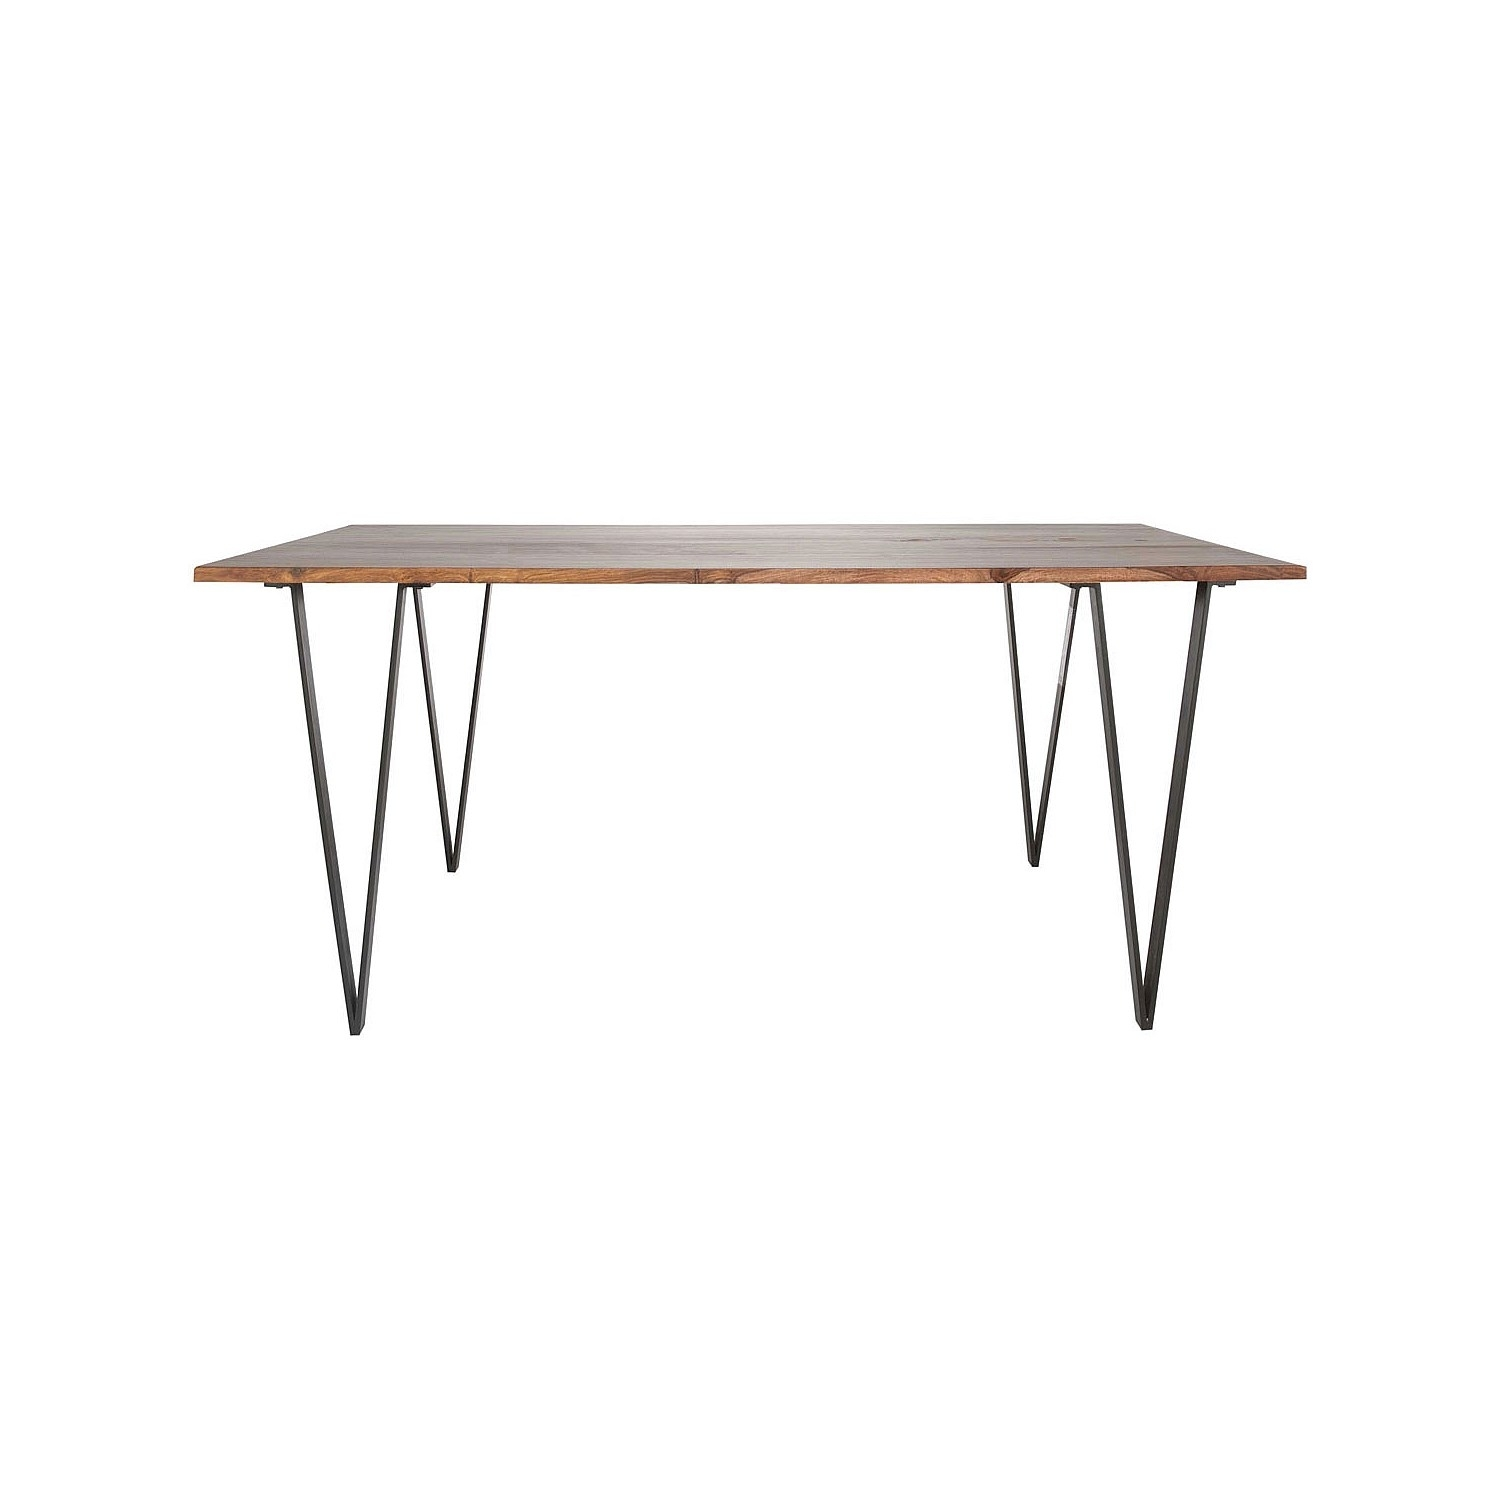 Dining Tables – Wyatt Dining Table 175X90Cm Throughout Most Current Wyatt Dining Tables (View 7 of 20)